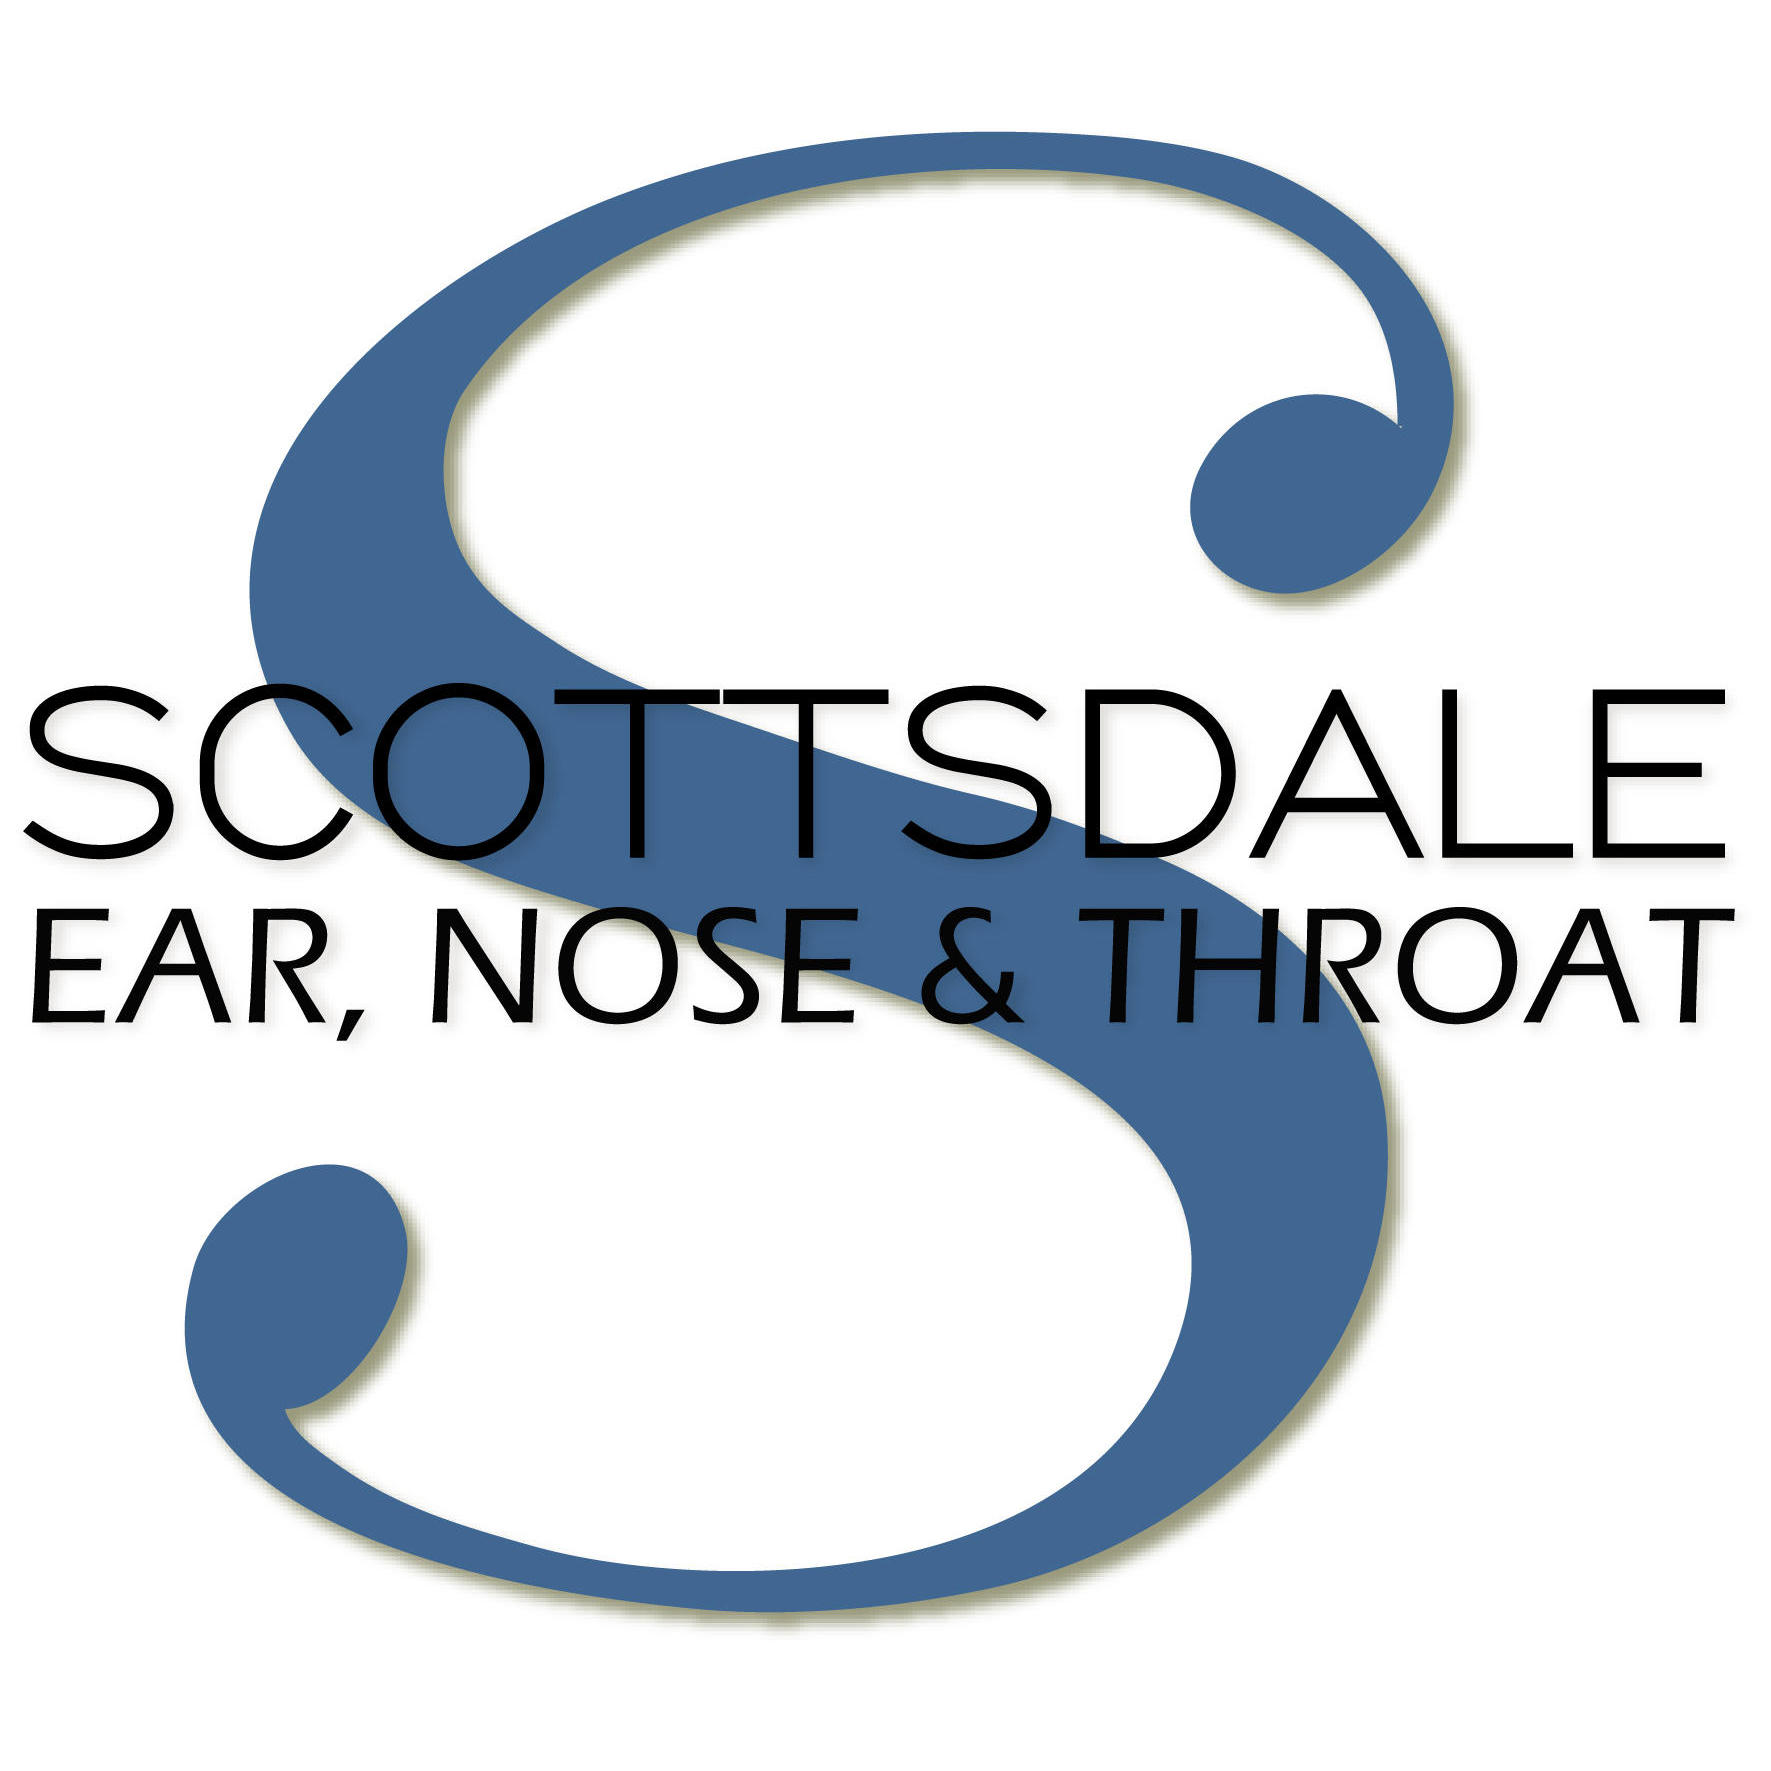 Scottsdale Ear, Nose and Throat